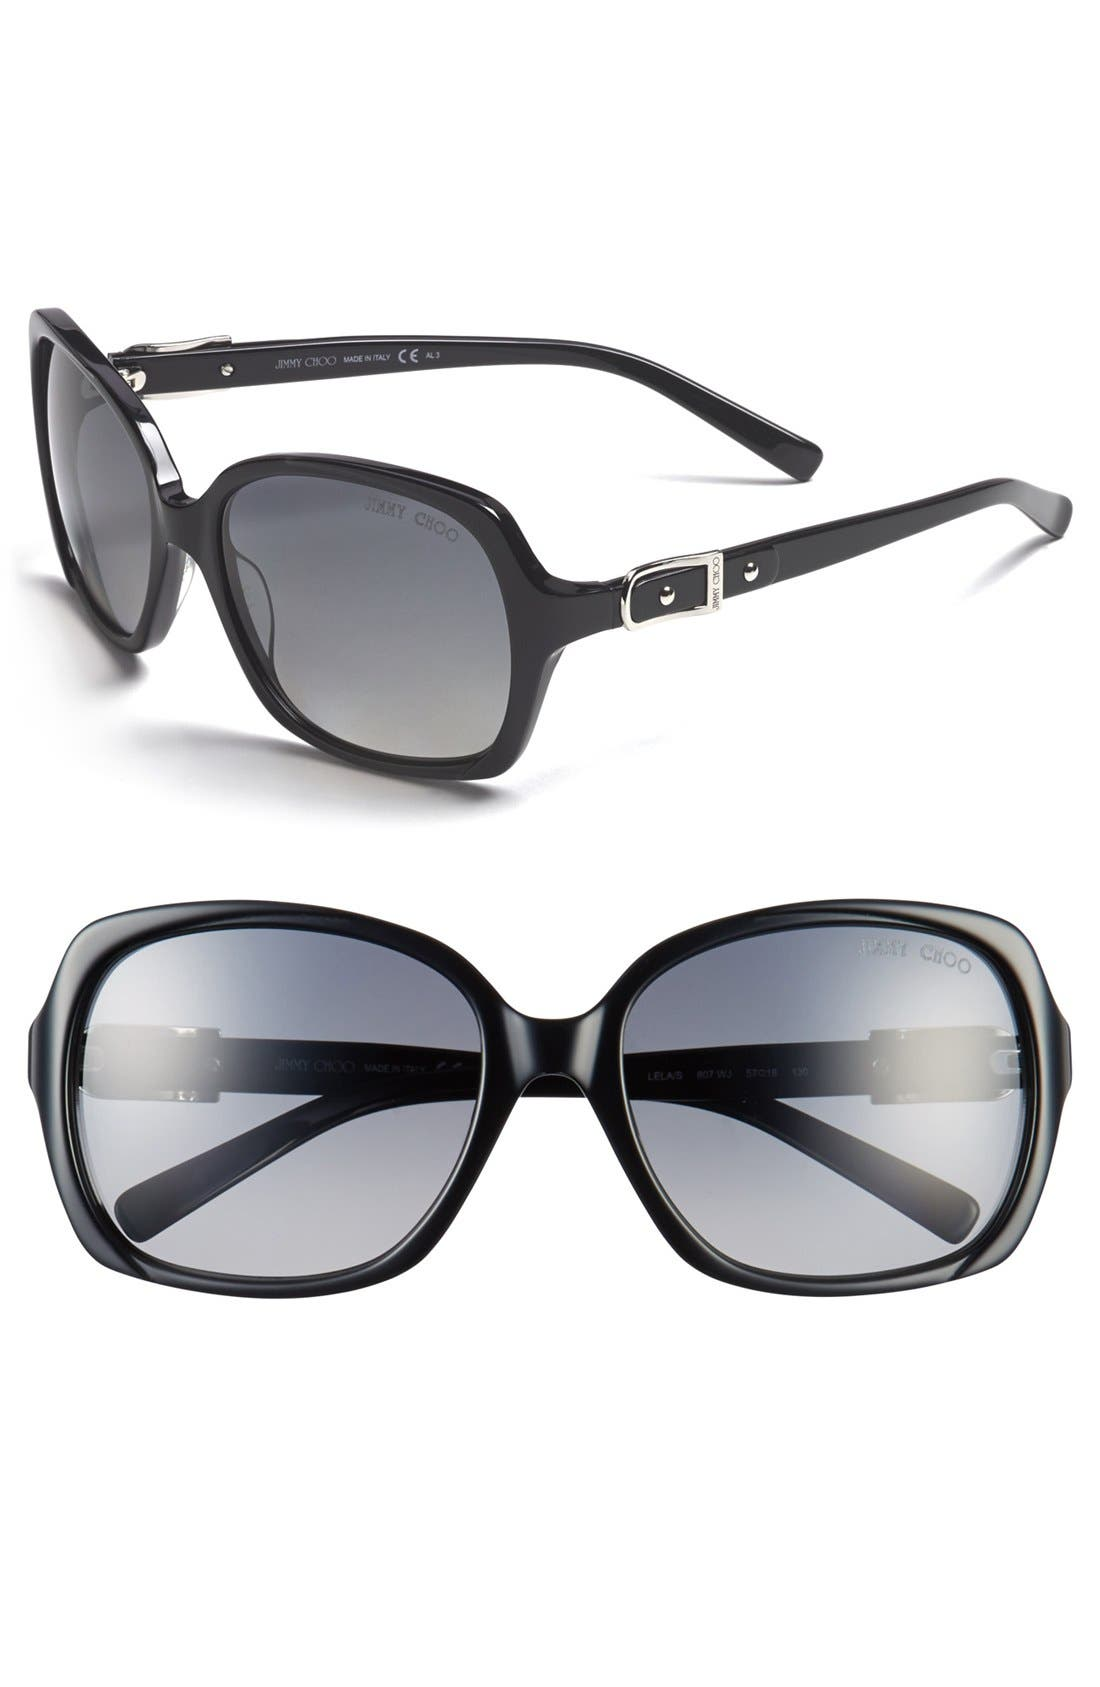 Alternate Image 1 Selected - Jimmy Choo 'Buckle' 57mm Polarized Sunglasses